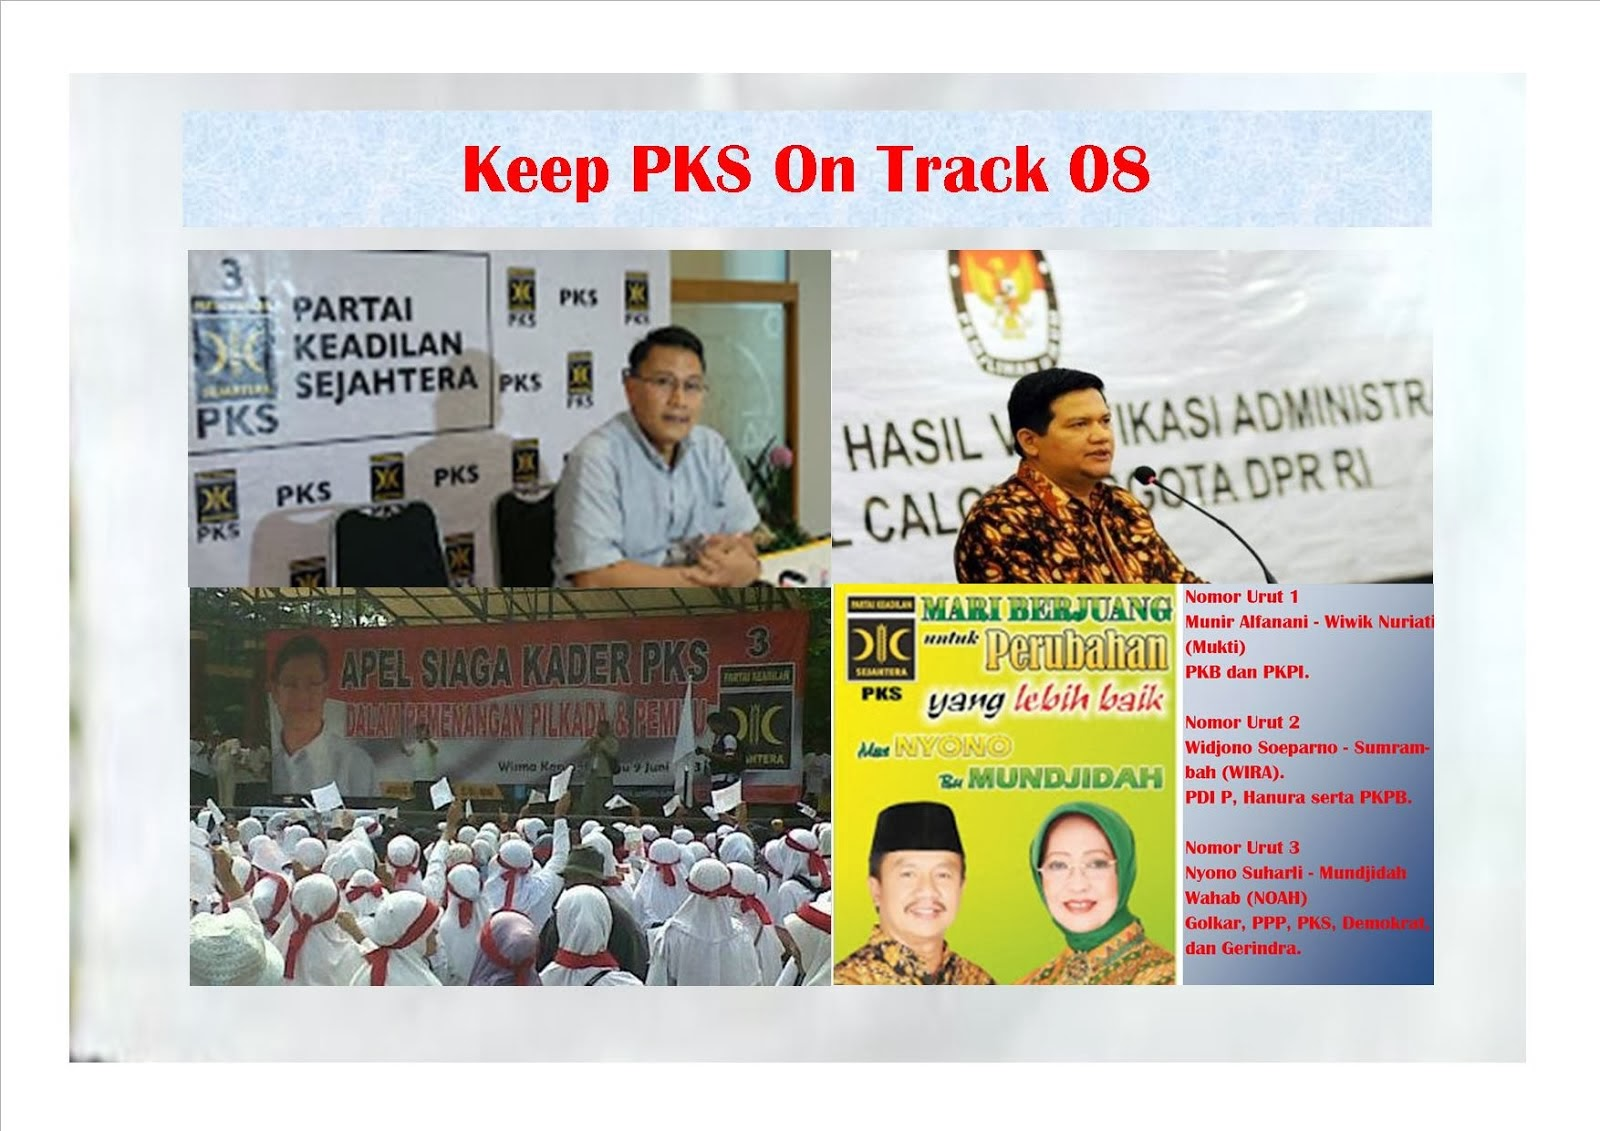 Keep PKS on Track 08